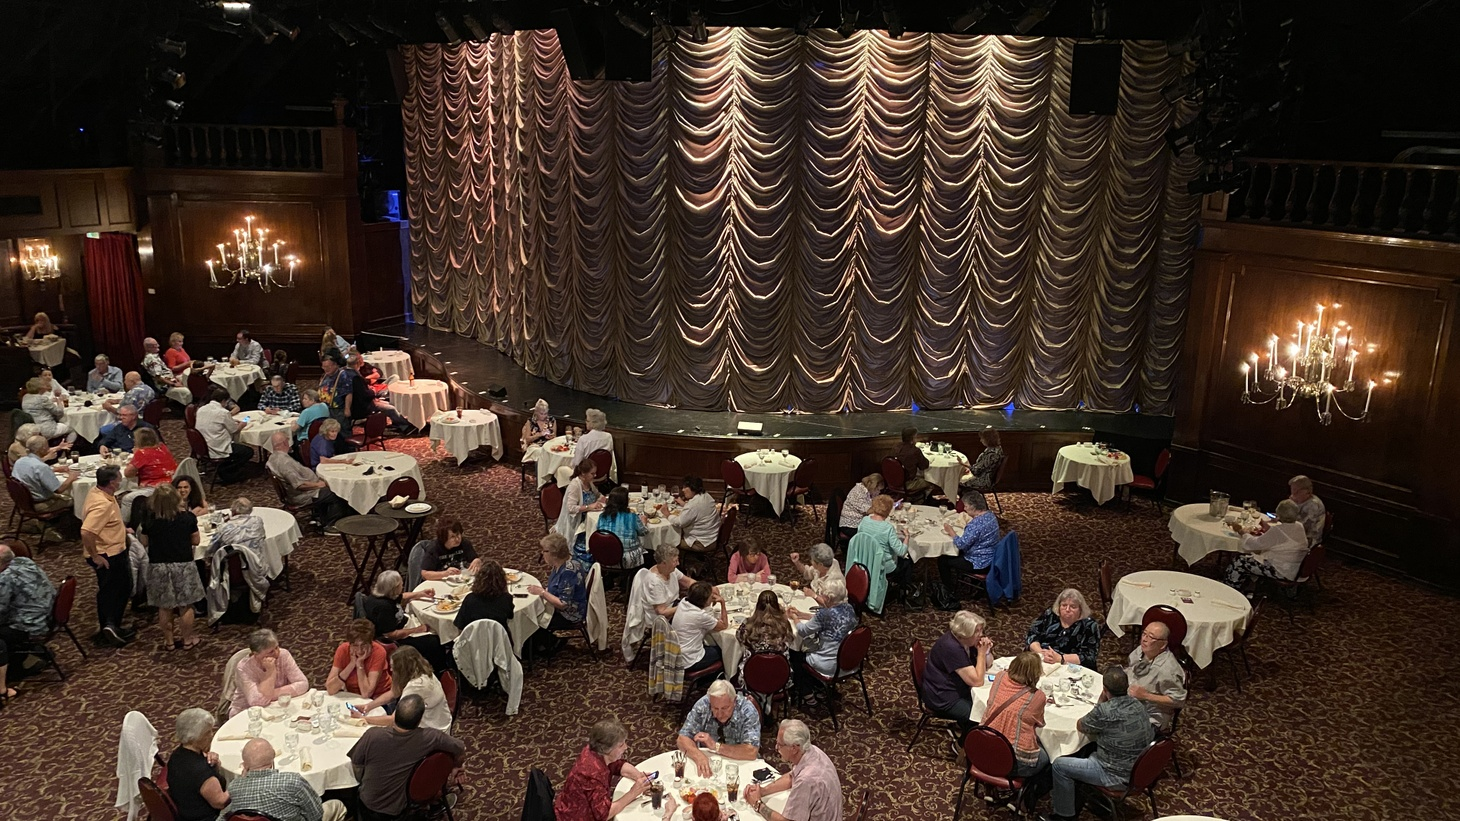 The Candlelight Pavilion's (re)opening night audience snacks and sips ahead of the evening's concert by Beatles tribute band Ticket to Ride. The venue has implemented a range of safety procedures, including extra distance, staggered seating times, and mandatory proof of vaccination or a negative COVID test within 72 hours of the event.